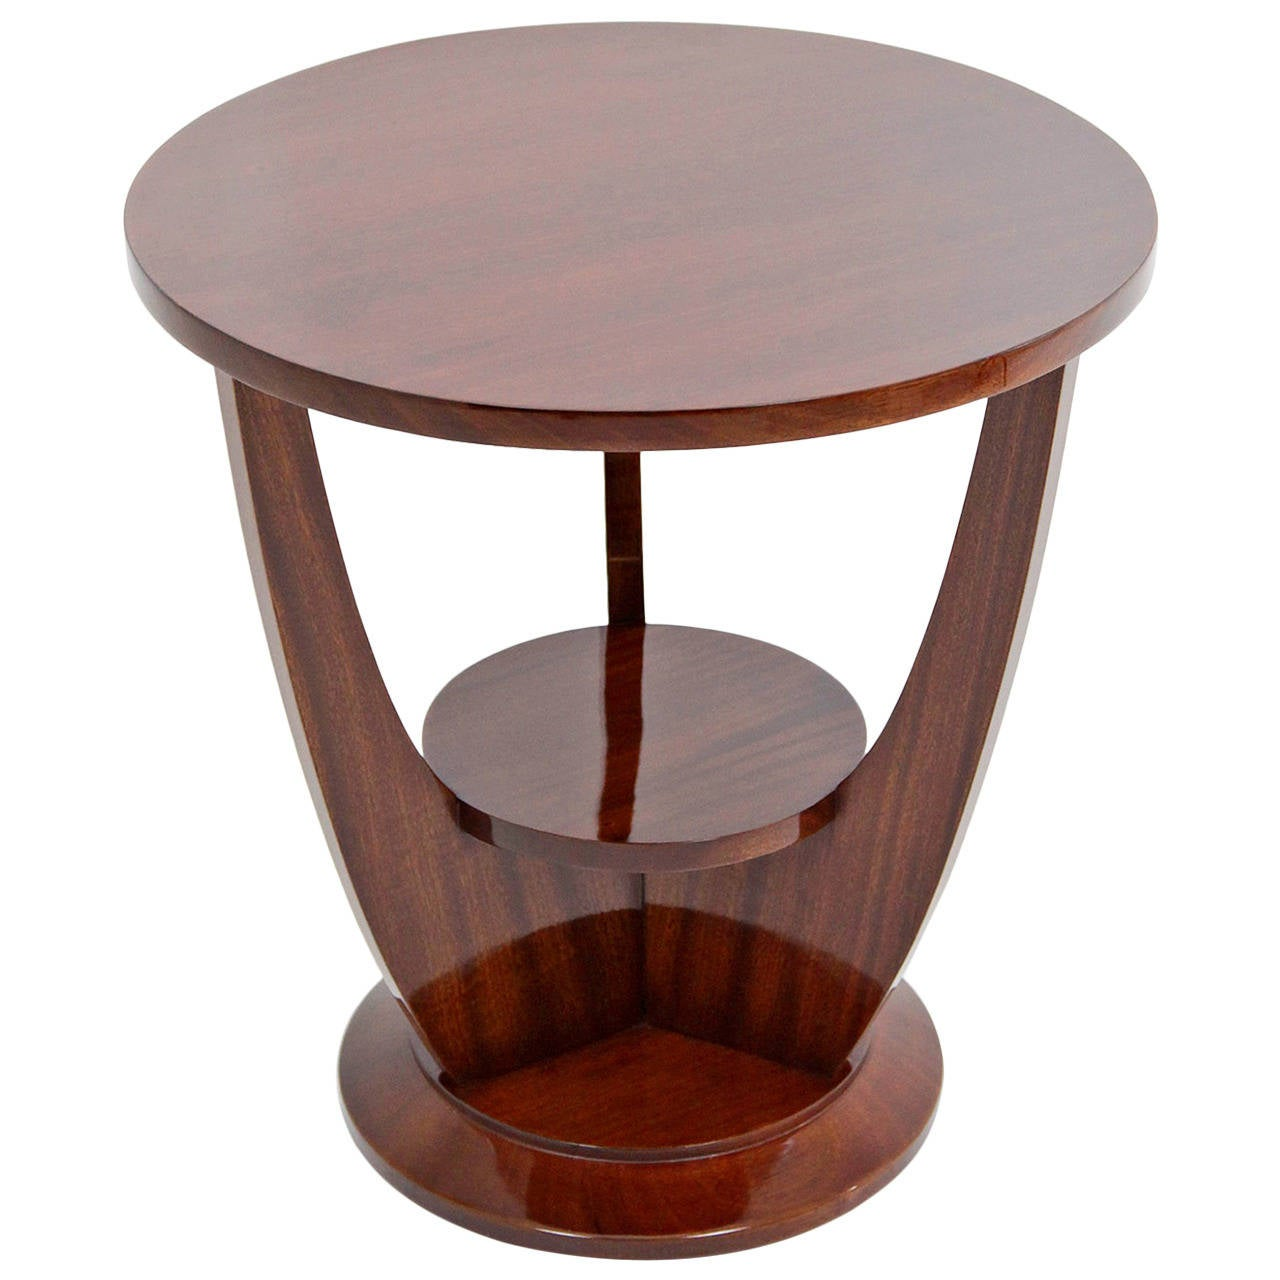 lovely french art deco side table circa 1920s for sale at 1stdibs. Black Bedroom Furniture Sets. Home Design Ideas